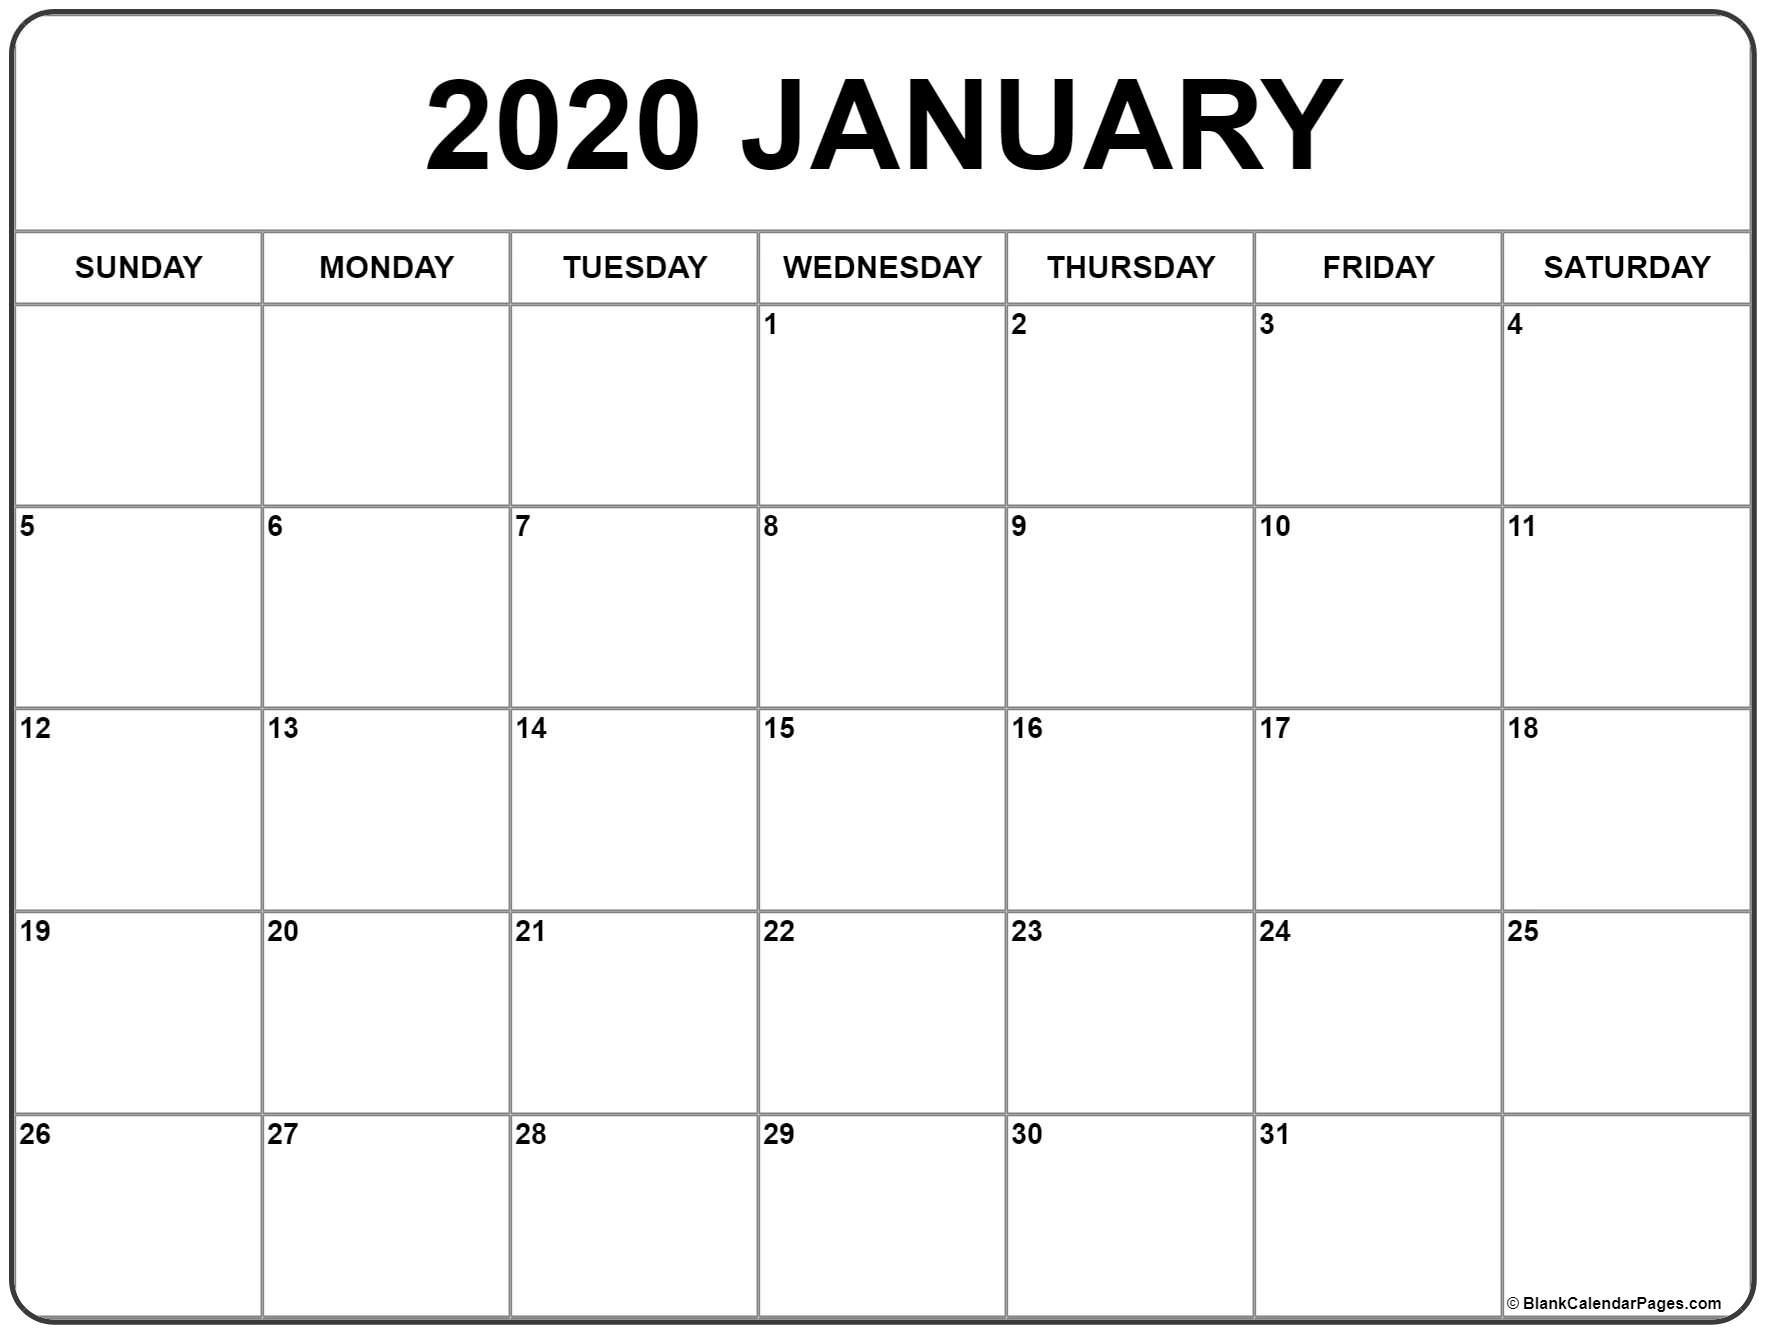 January 2020 Calendar | Free Printable Monthly Calendars-Free Printable Monthly Calendar August 2020